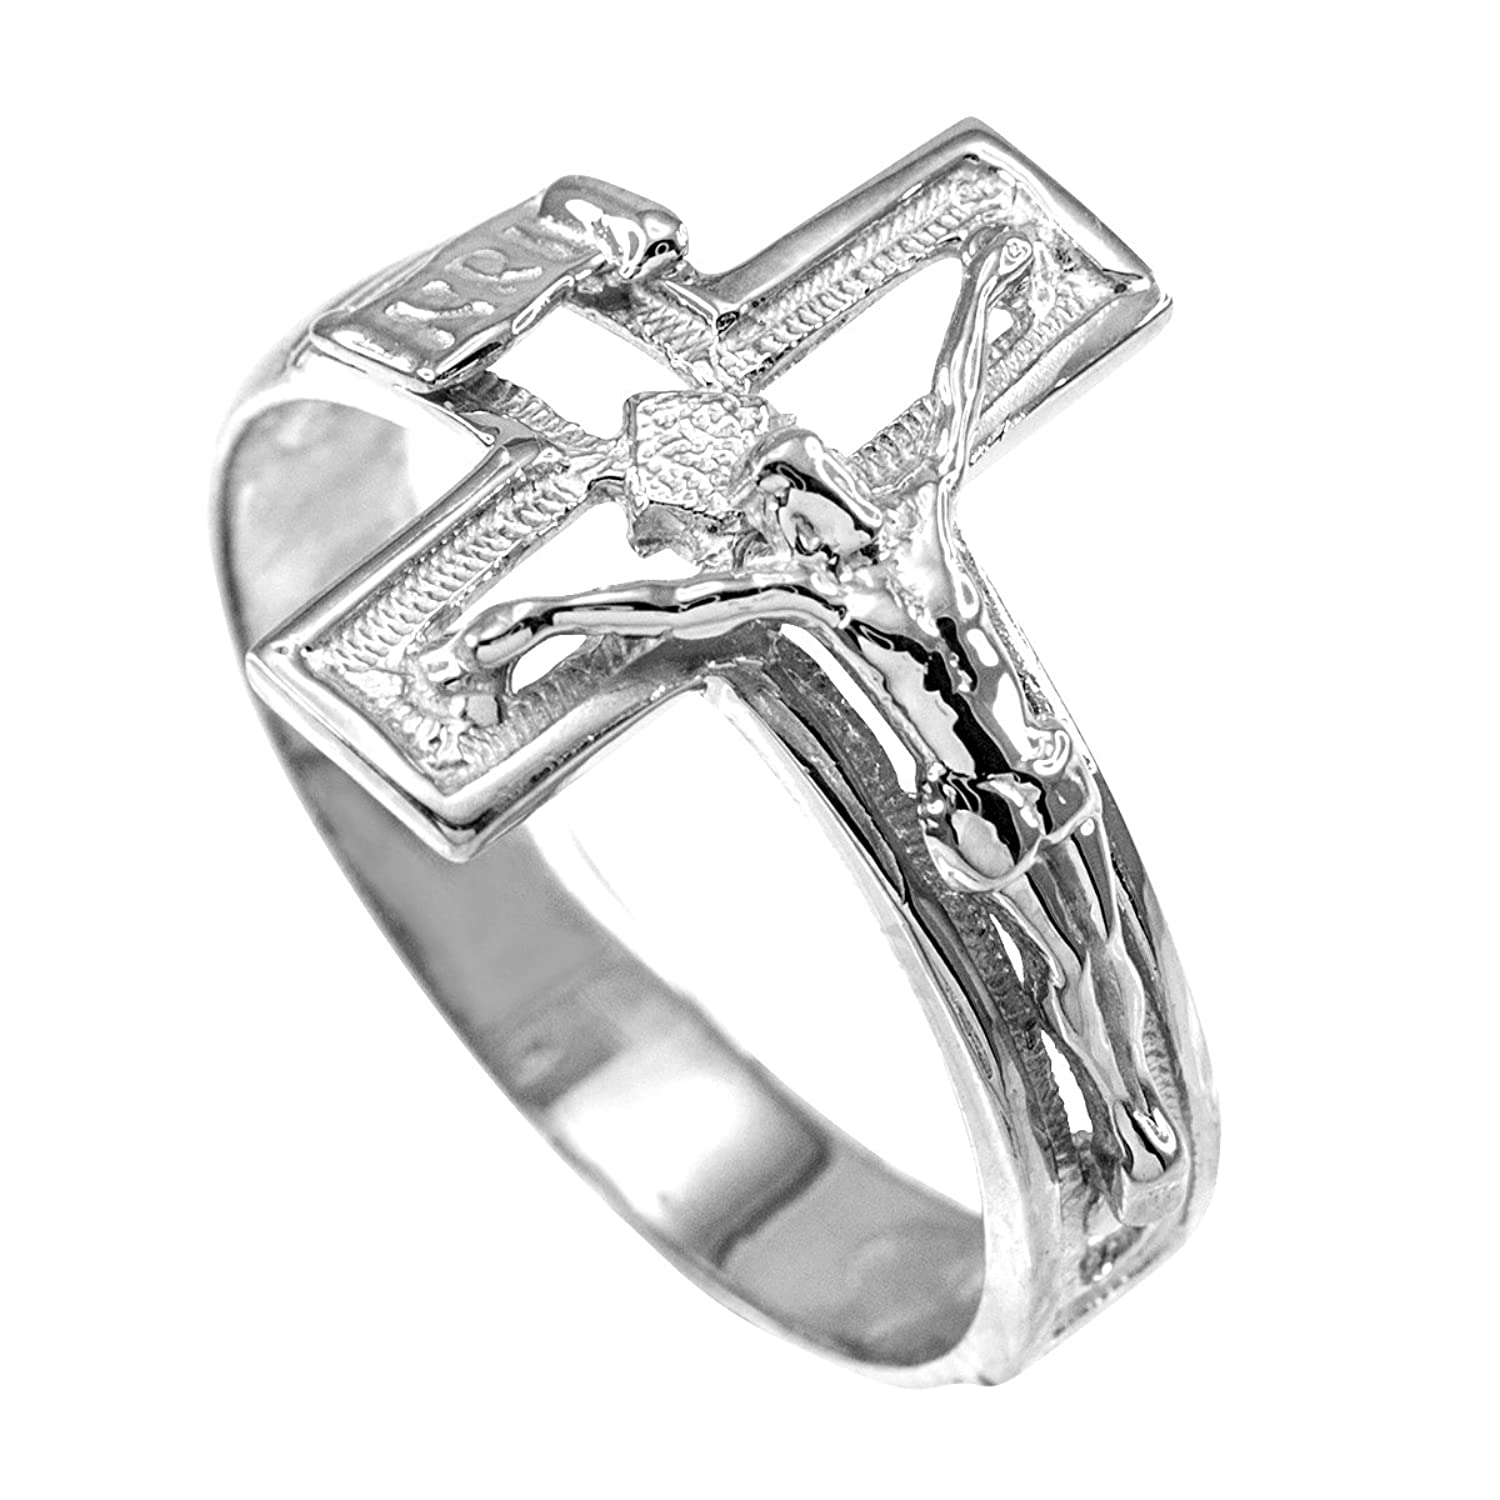 jesus rings necklace crucifix inri pendant sterling sstr inch az cross bling christ silver jewelry